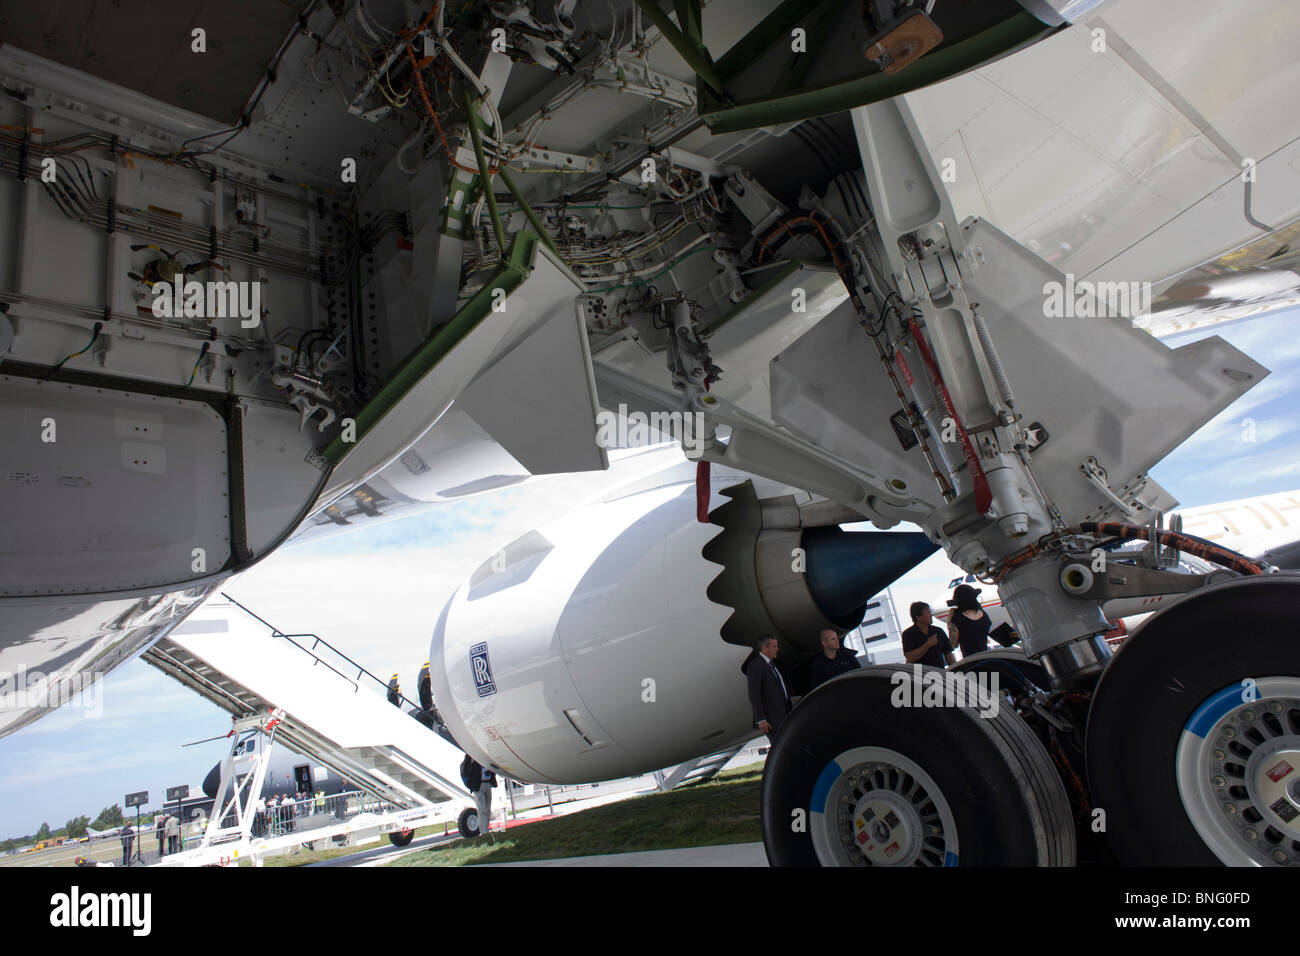 Undercarriage and main wheels bays of Boeing-manufactured 787 Dreamliner (N787BX) at the Farnborough Airshow. - Stock Image